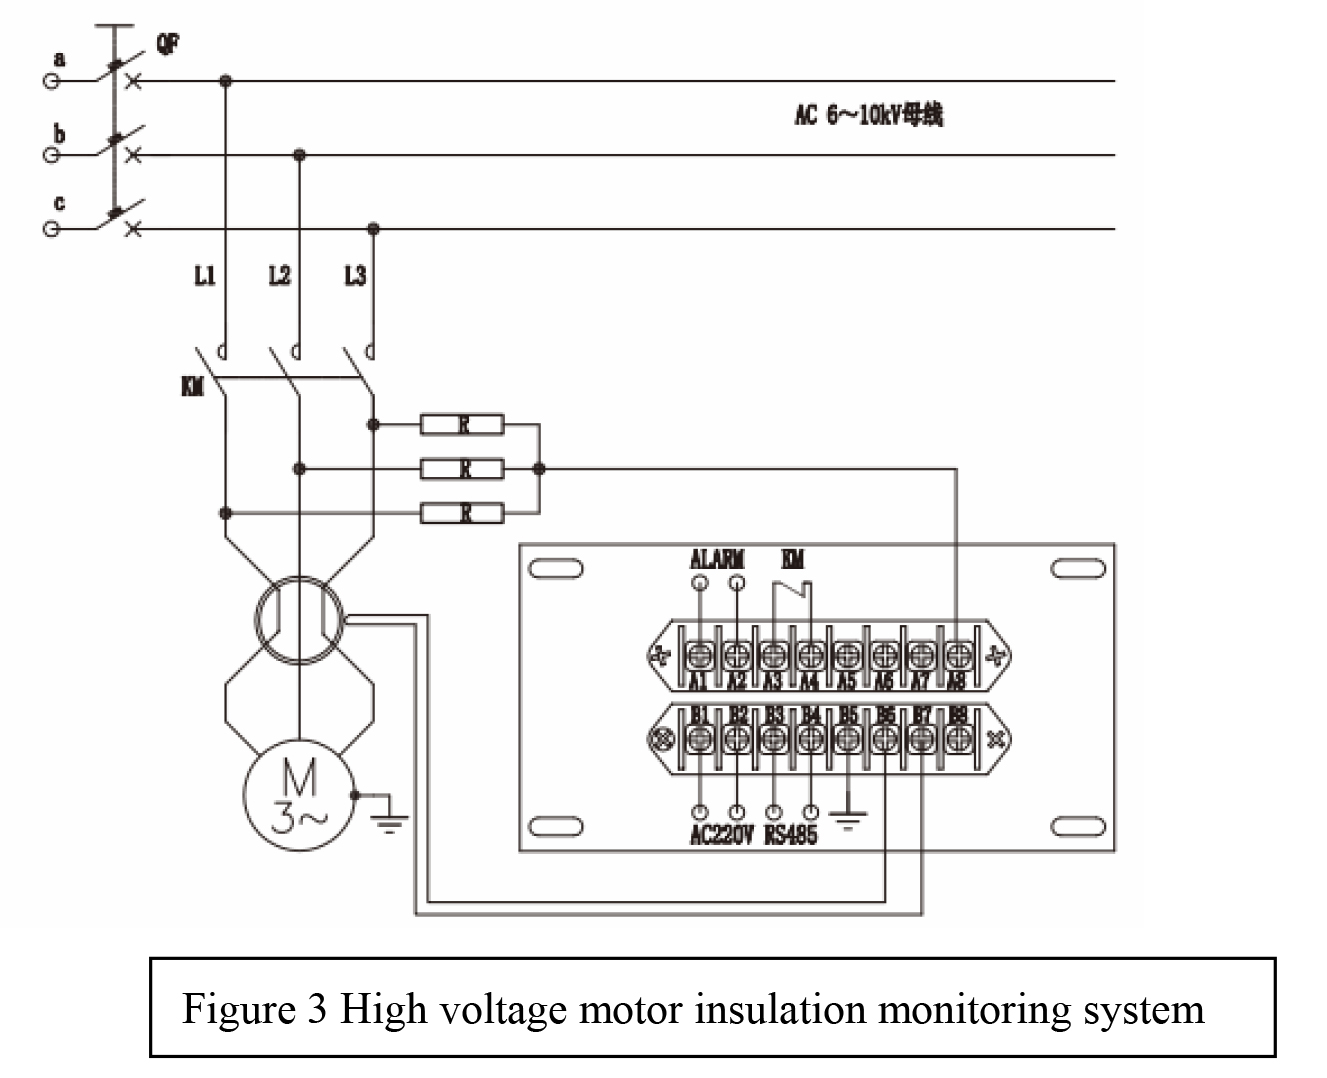 High Voltage Motor Insulation On-Line Monitoring System